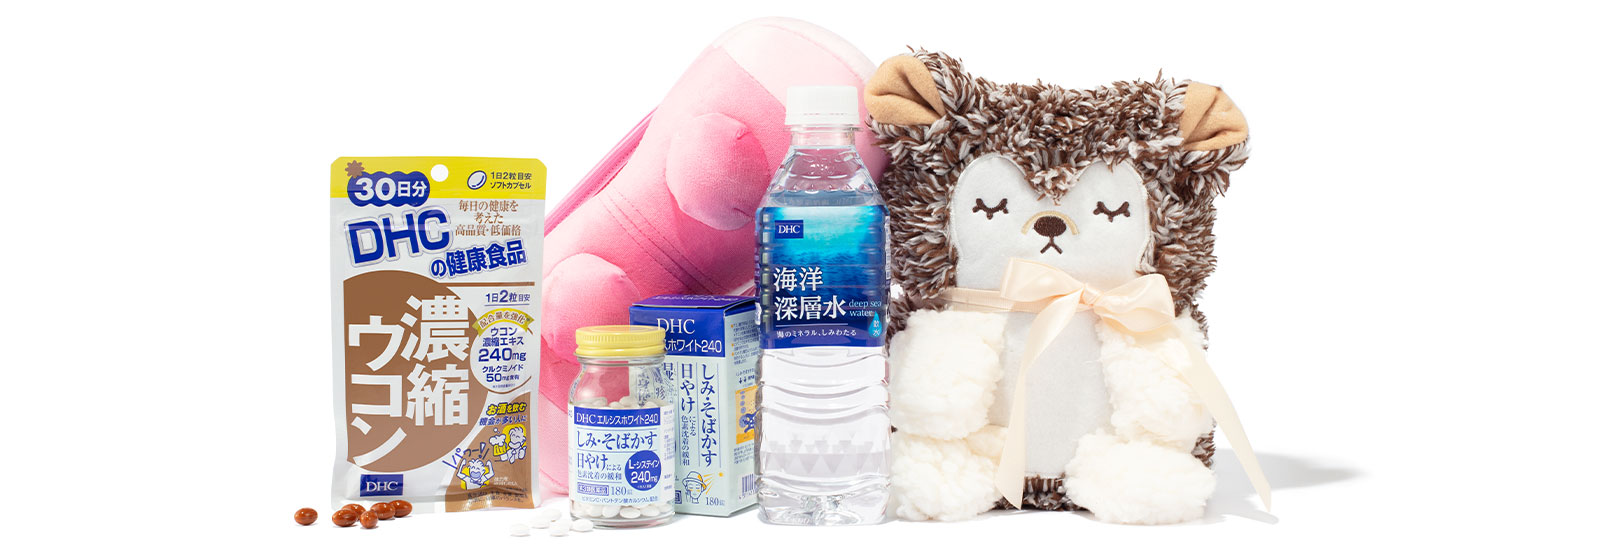 Japanese products for health and beauty